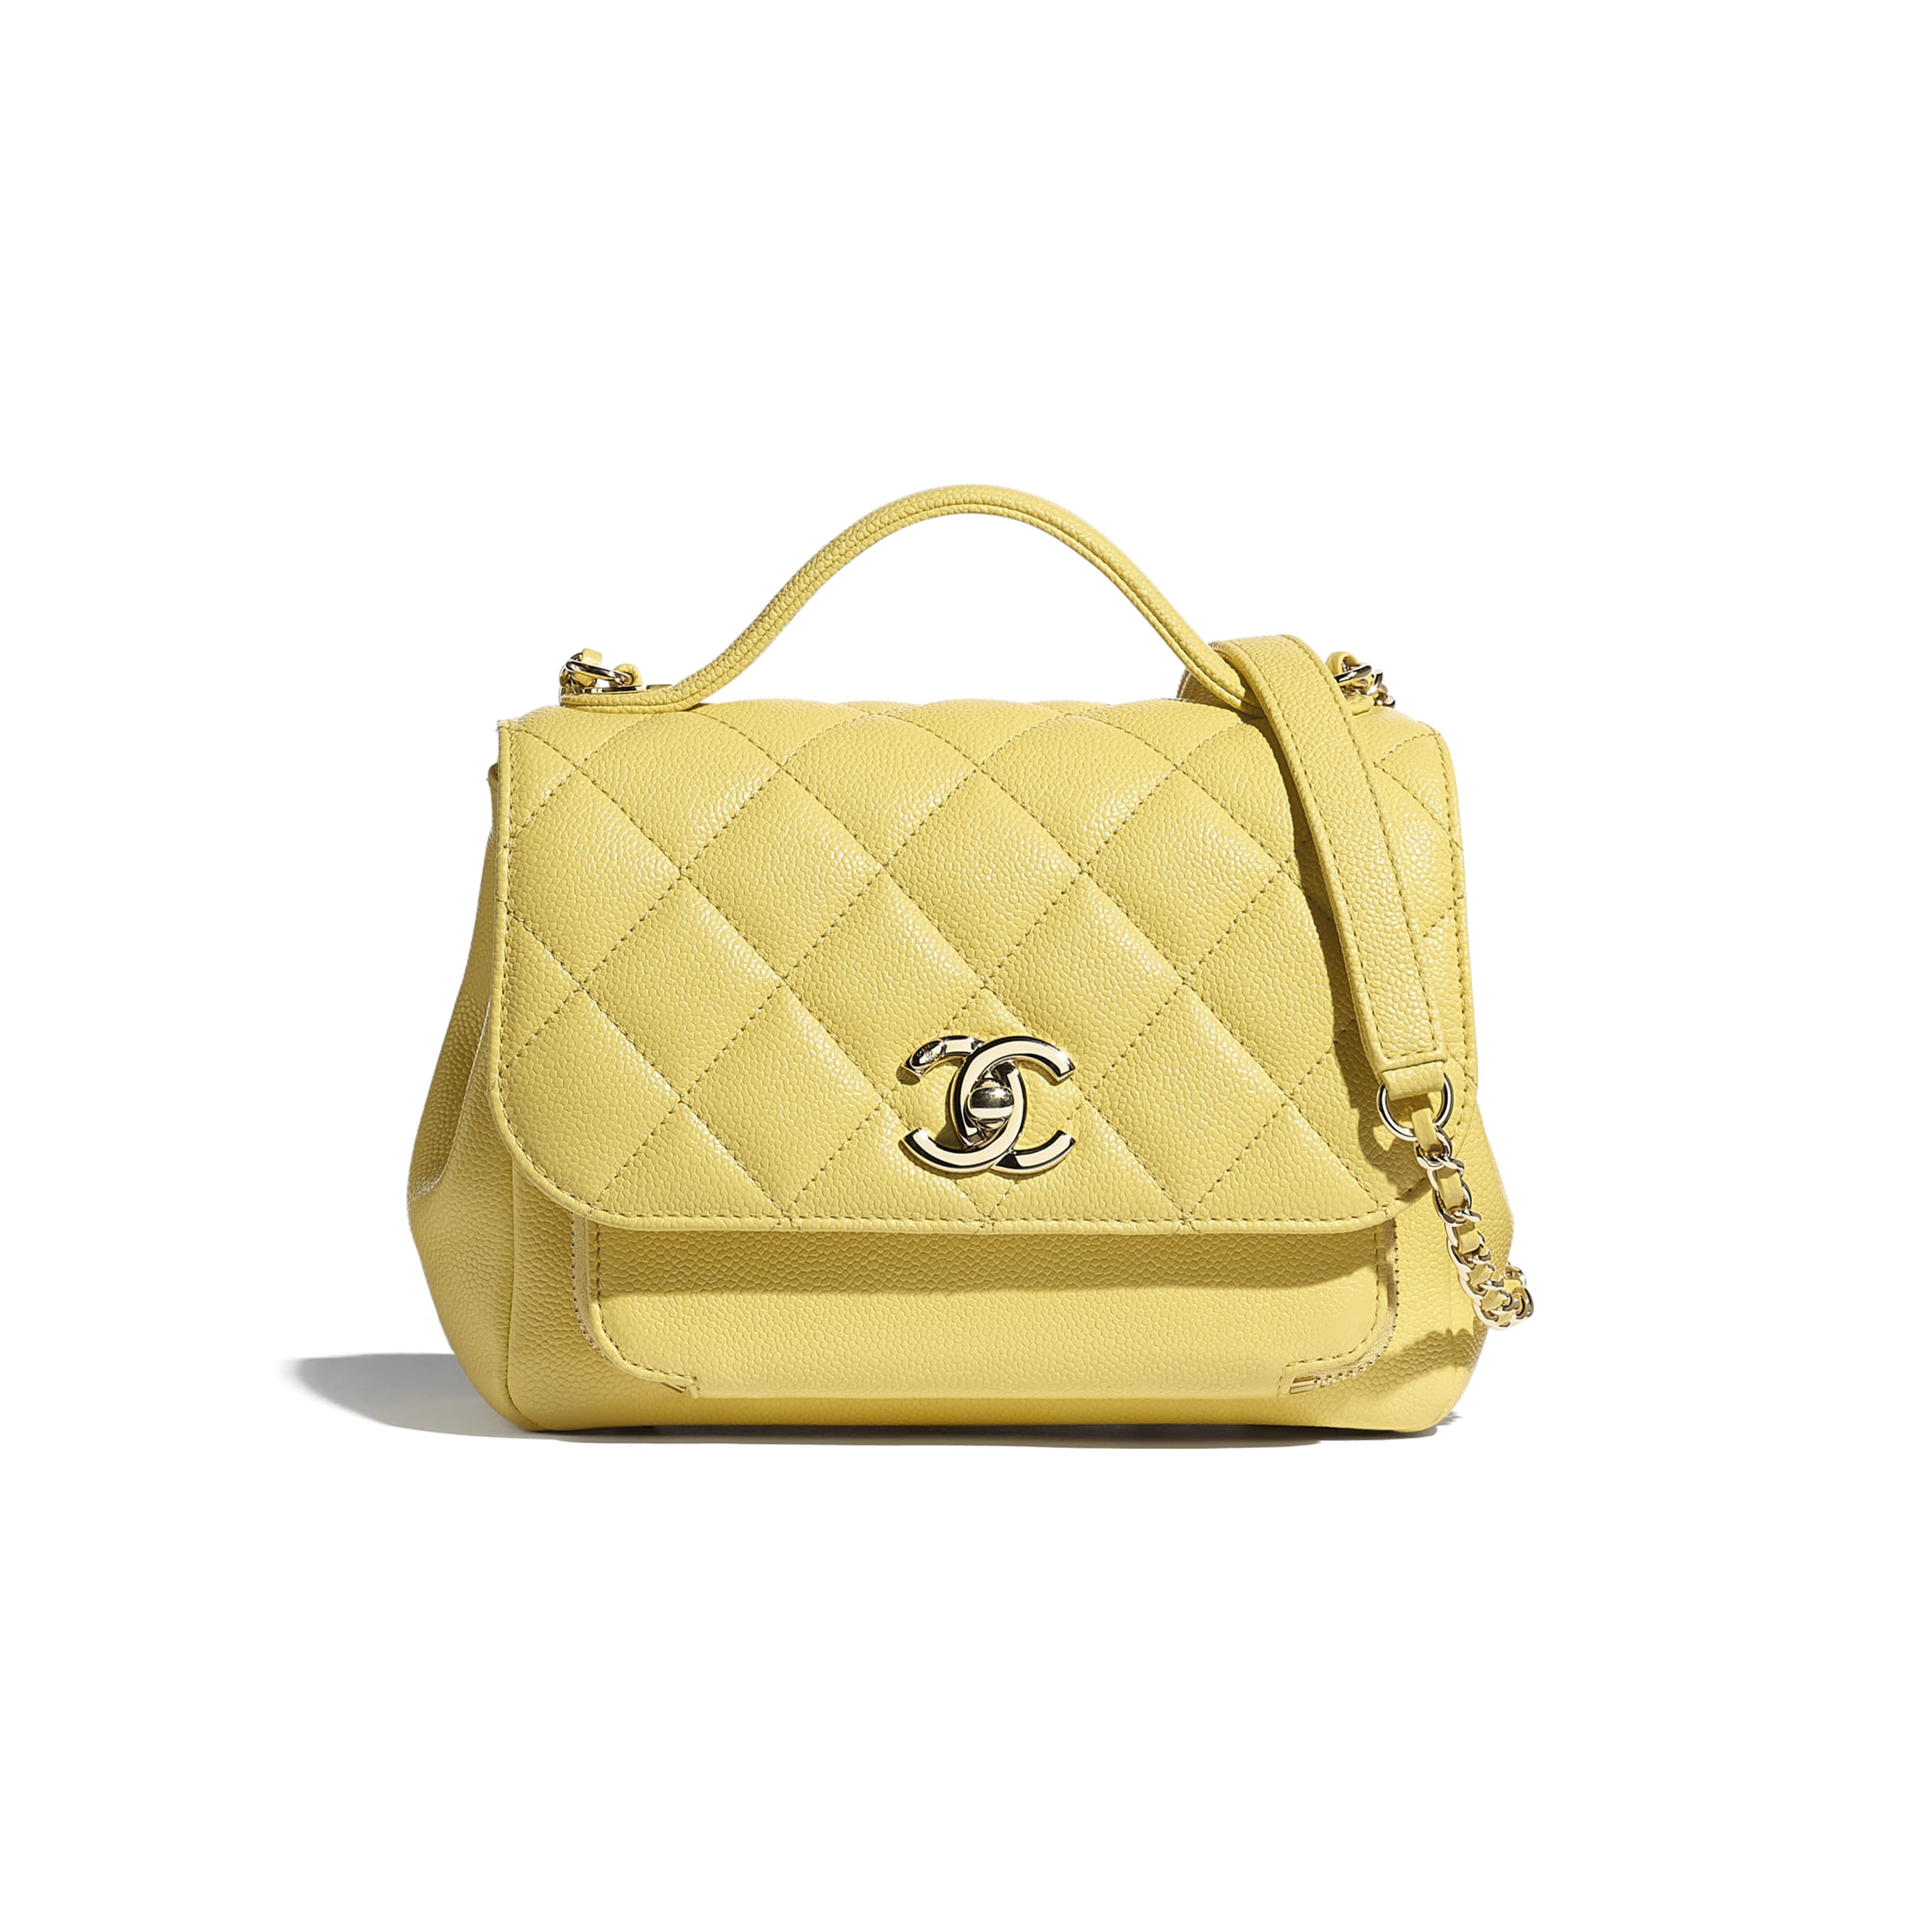 Mini Flap Bag with Handle - Yellow - Grained Calfskin & Gold-Tone Metal - CHANEL - Default view - see standard sized version